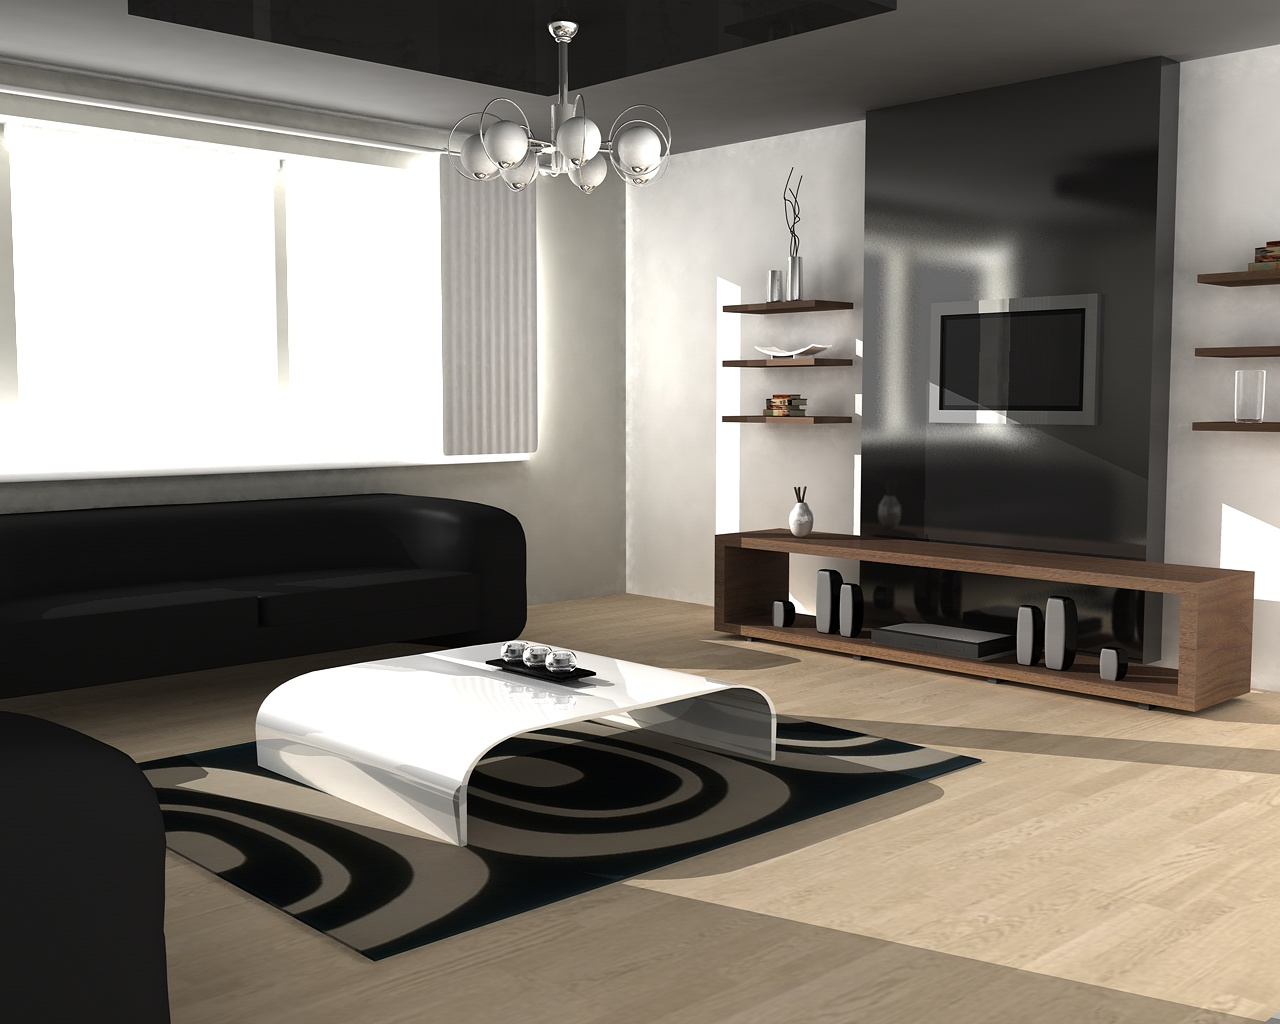 Brilliant Modern Living Room Design Ideas 1280 x 1024 · 255 kB · jpeg